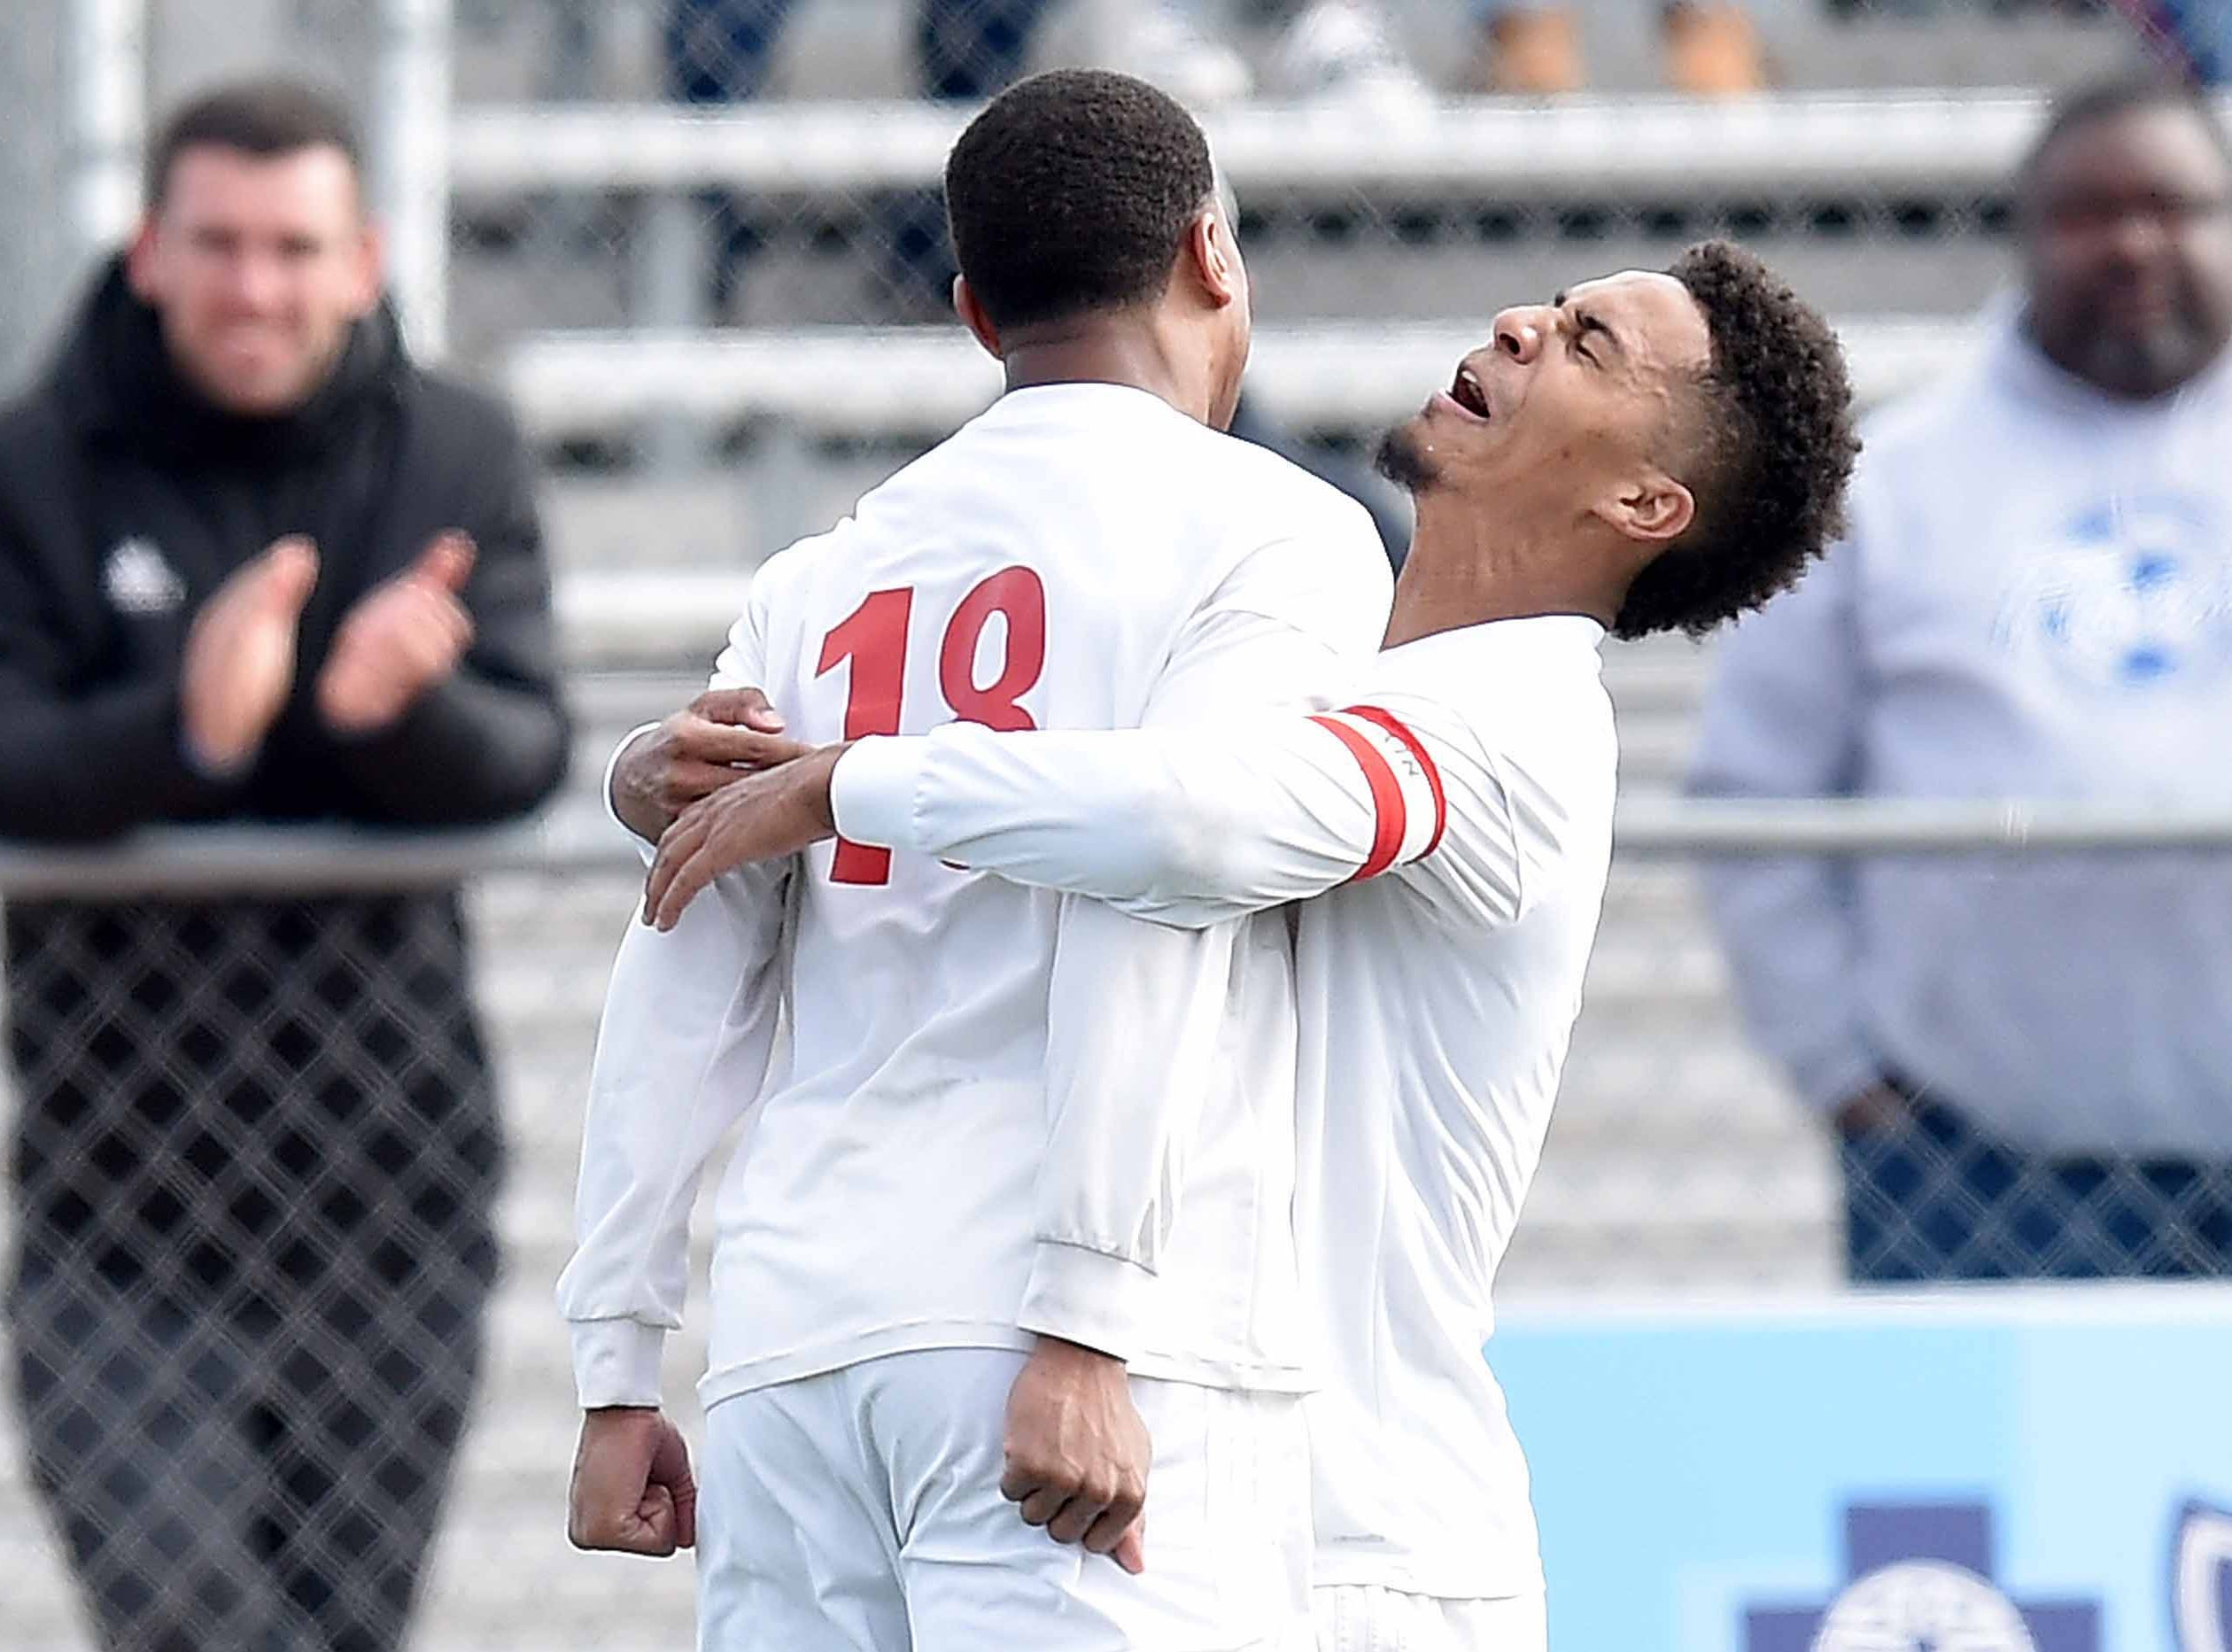 Richland's Greg Anderson (18) celebrates his penalty kick goal against West Lauderdale in the Class 4A state championship in the MHSAA BlueCross Blue Shield of Mississippi Soccer Classic on Saturday, February 9, 2019, at Ridgeland High School in Ridgeland, Miss.